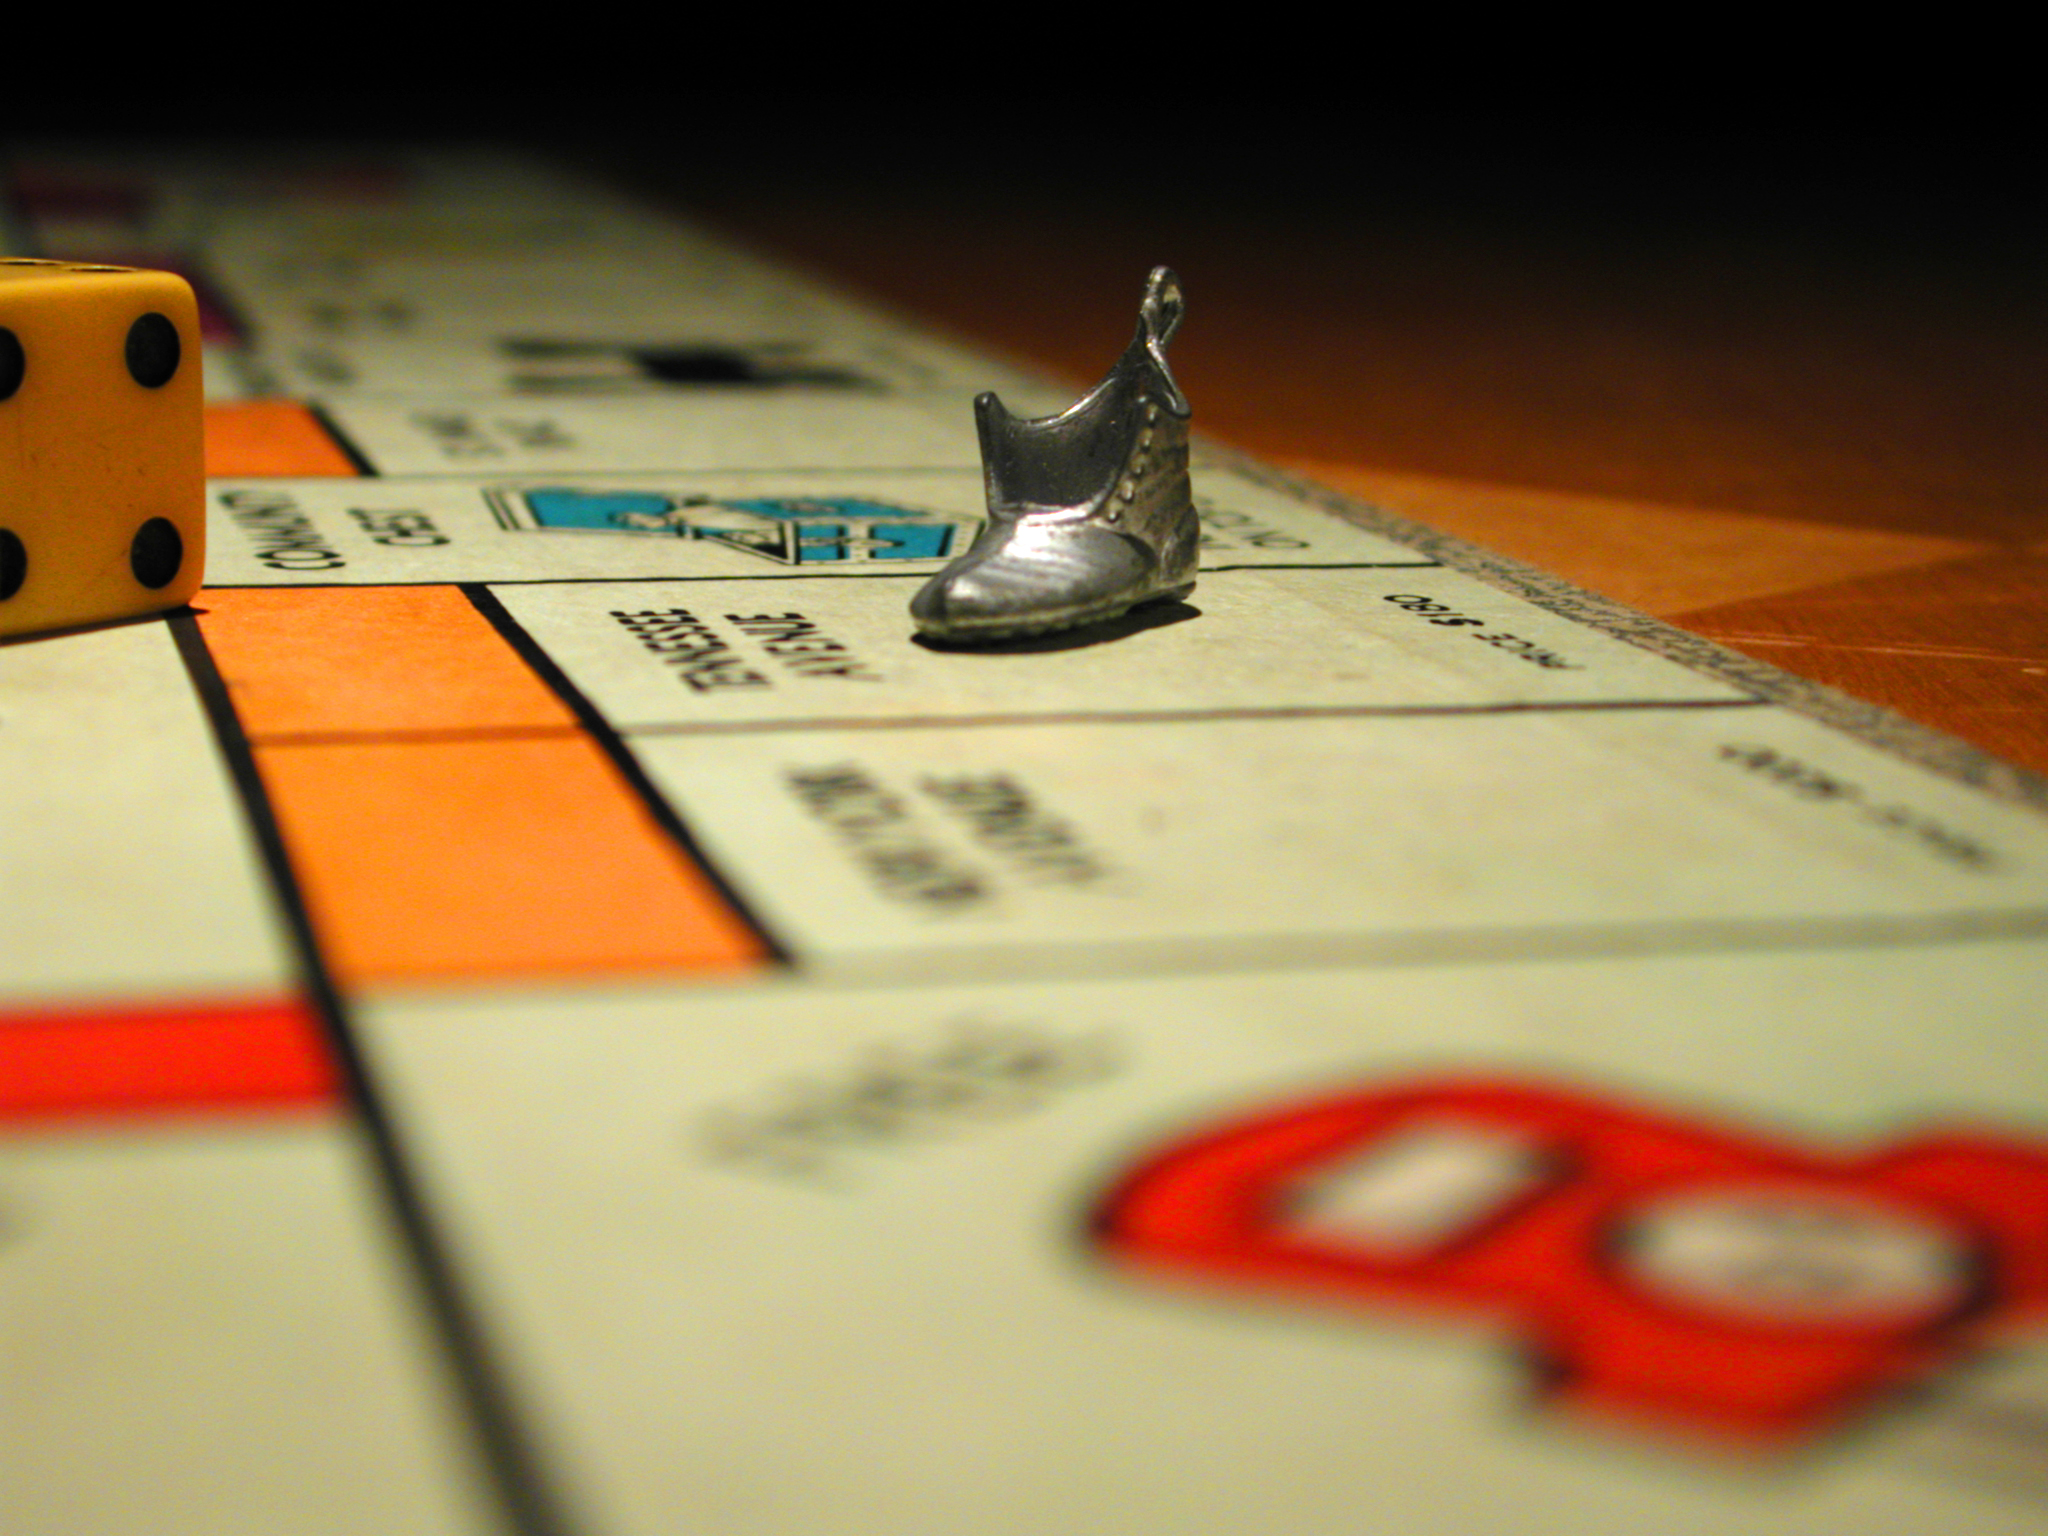 The game of Monopoly. Here comes the shoe.